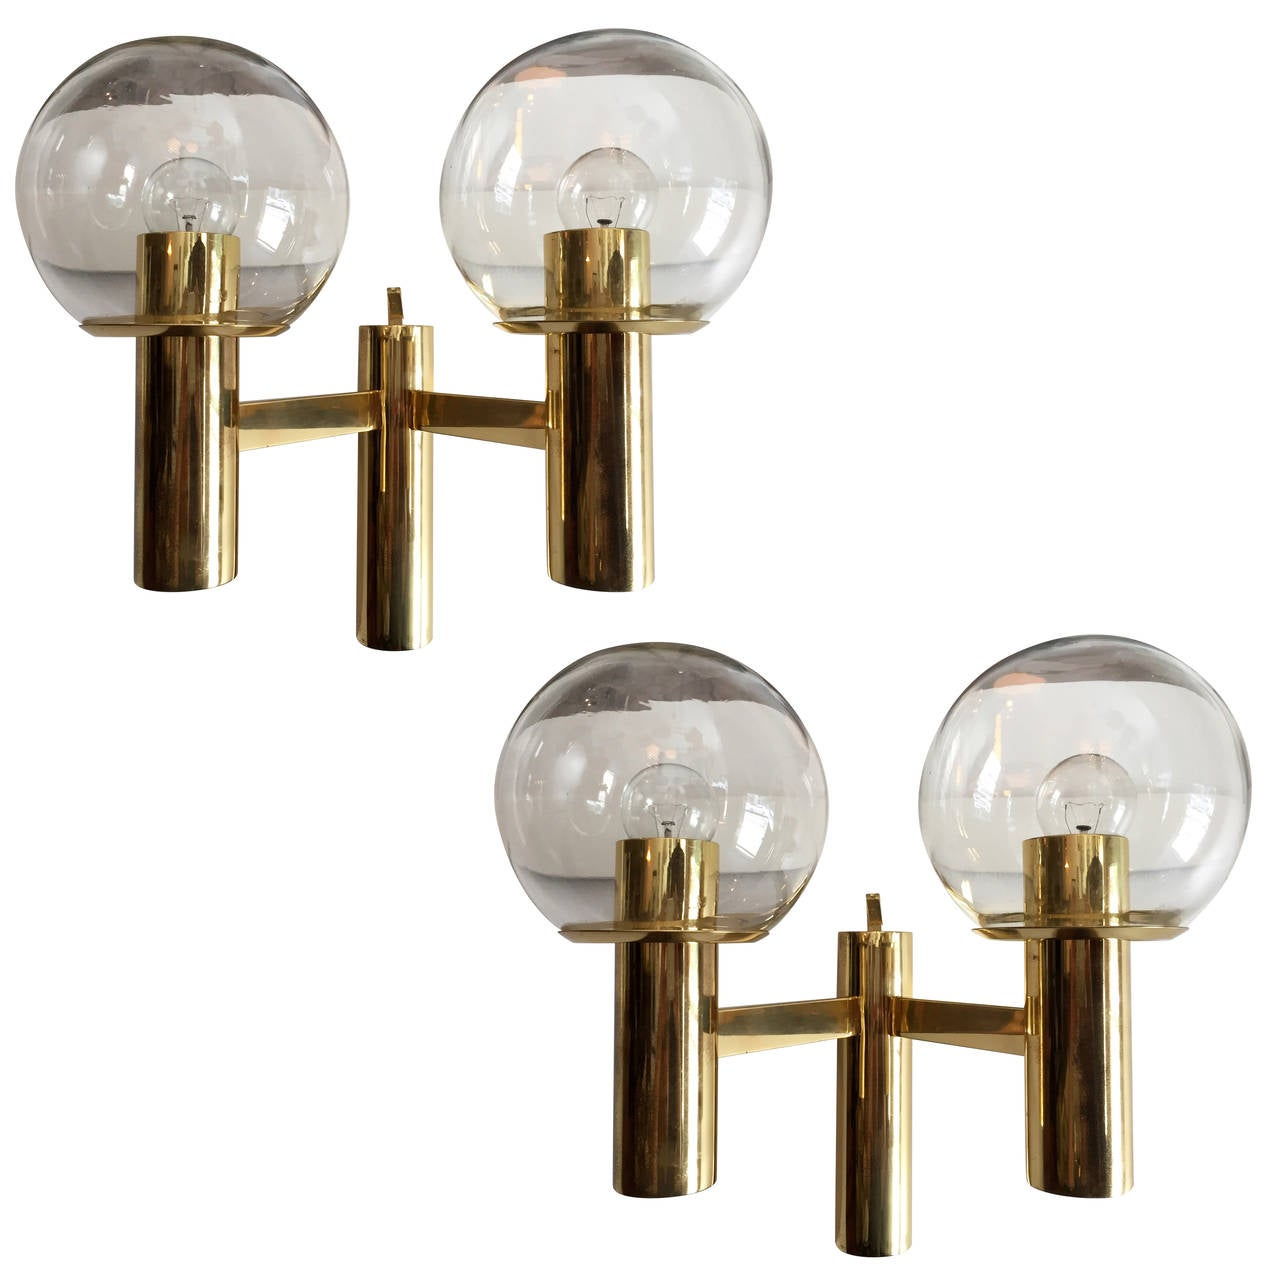 Pair of Hans Agne Jakobsson Wall Lights